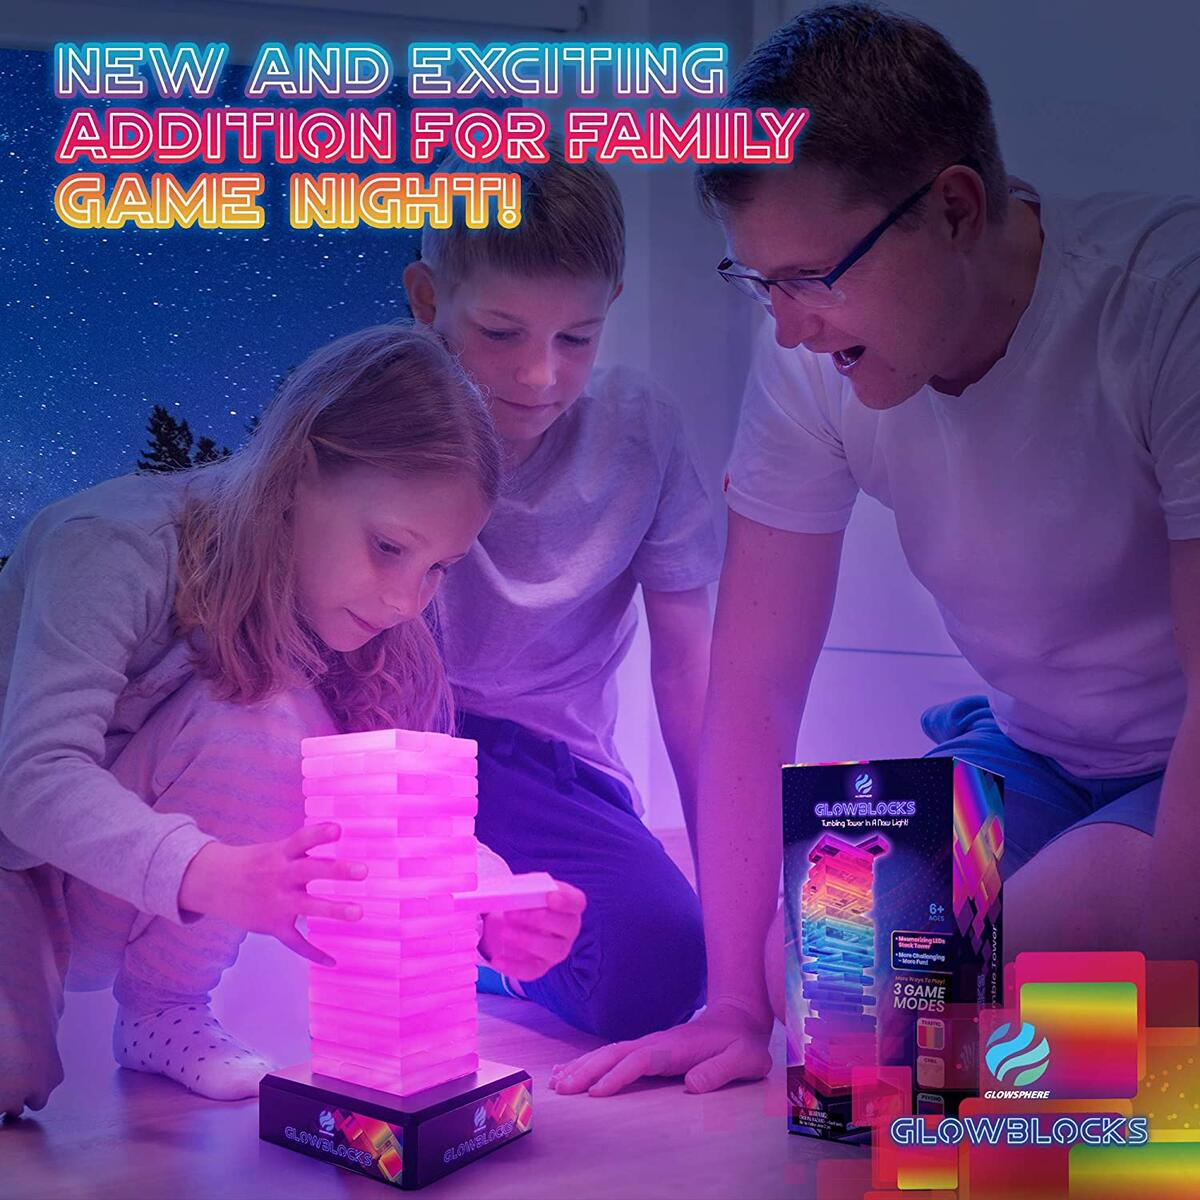 Glowblocks Light-Up Tumbling Tower Game